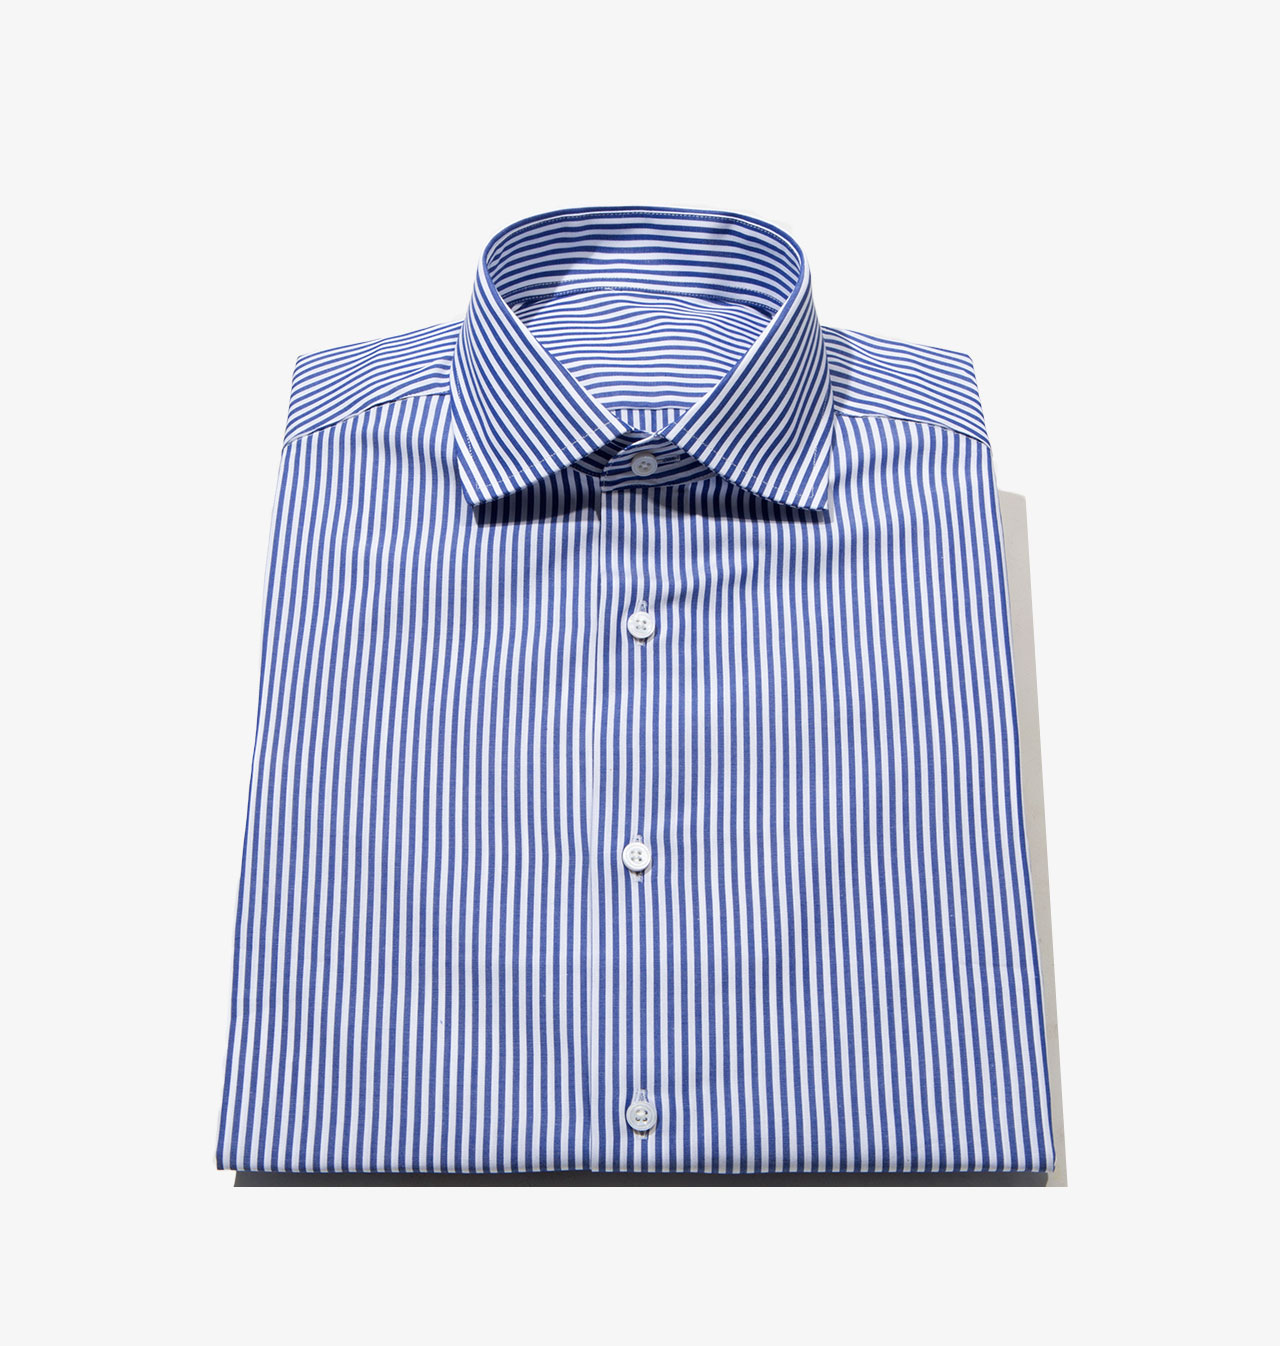 Custom Dress Shirts Tailored Shirts And Mens Shirts Online